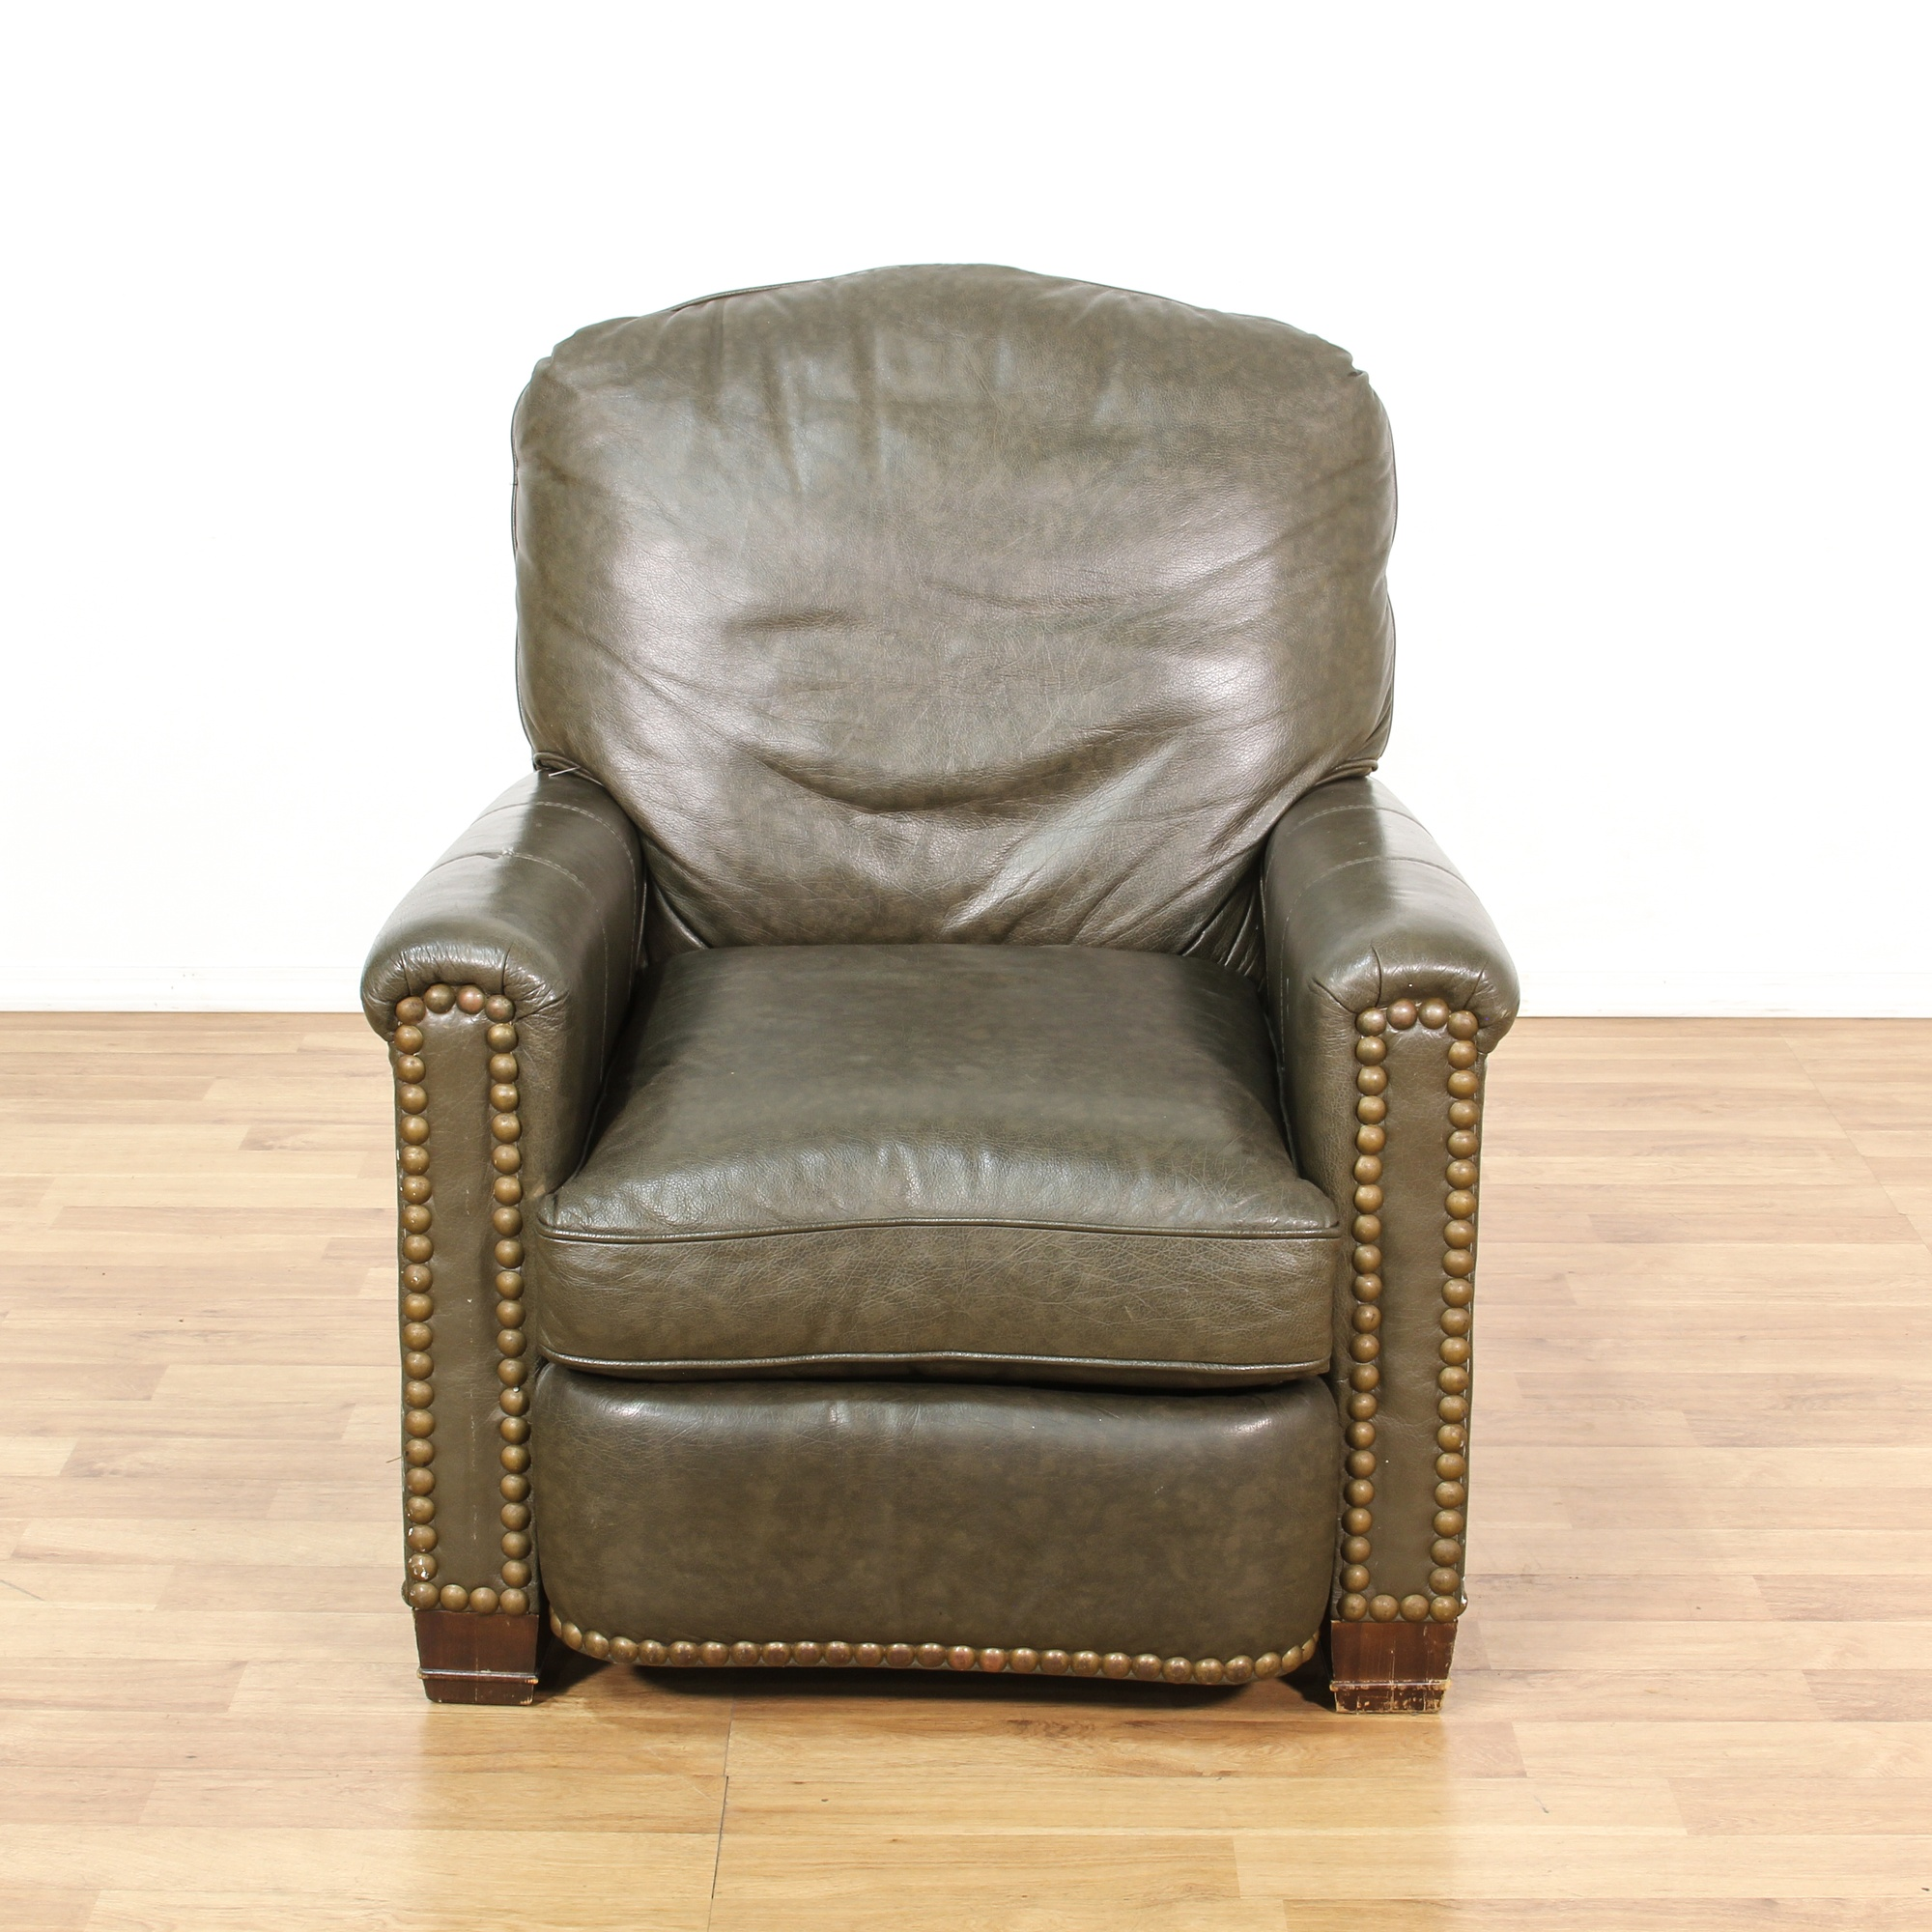 Brown Leather Vinyl Studded Recliner Chair Loveseat